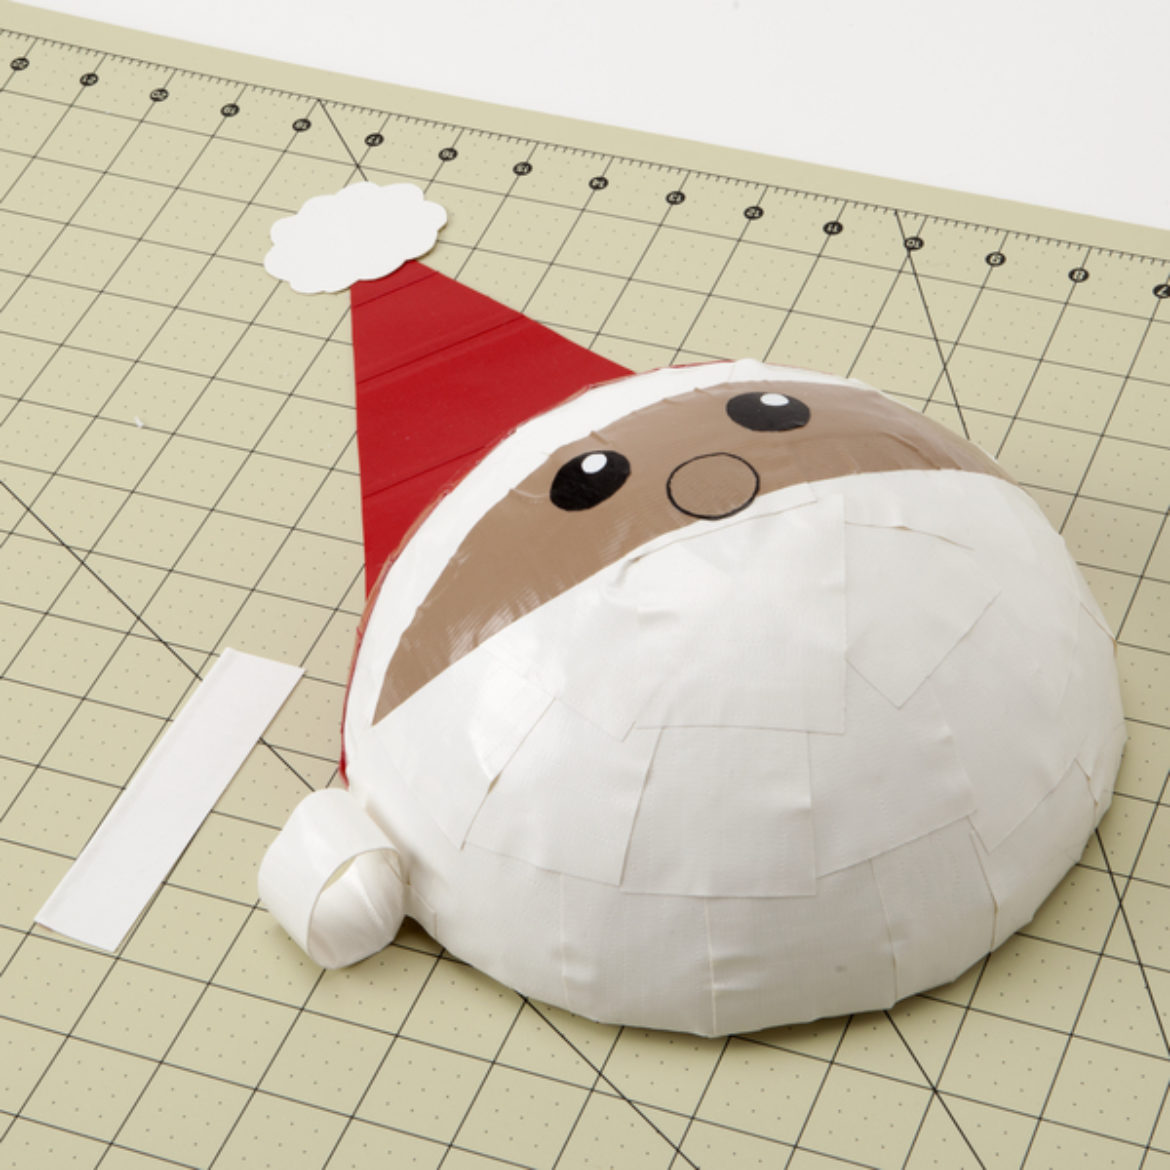 Strip from previous step formed into a loop, and then taped to the side of Santa's face to form the beard